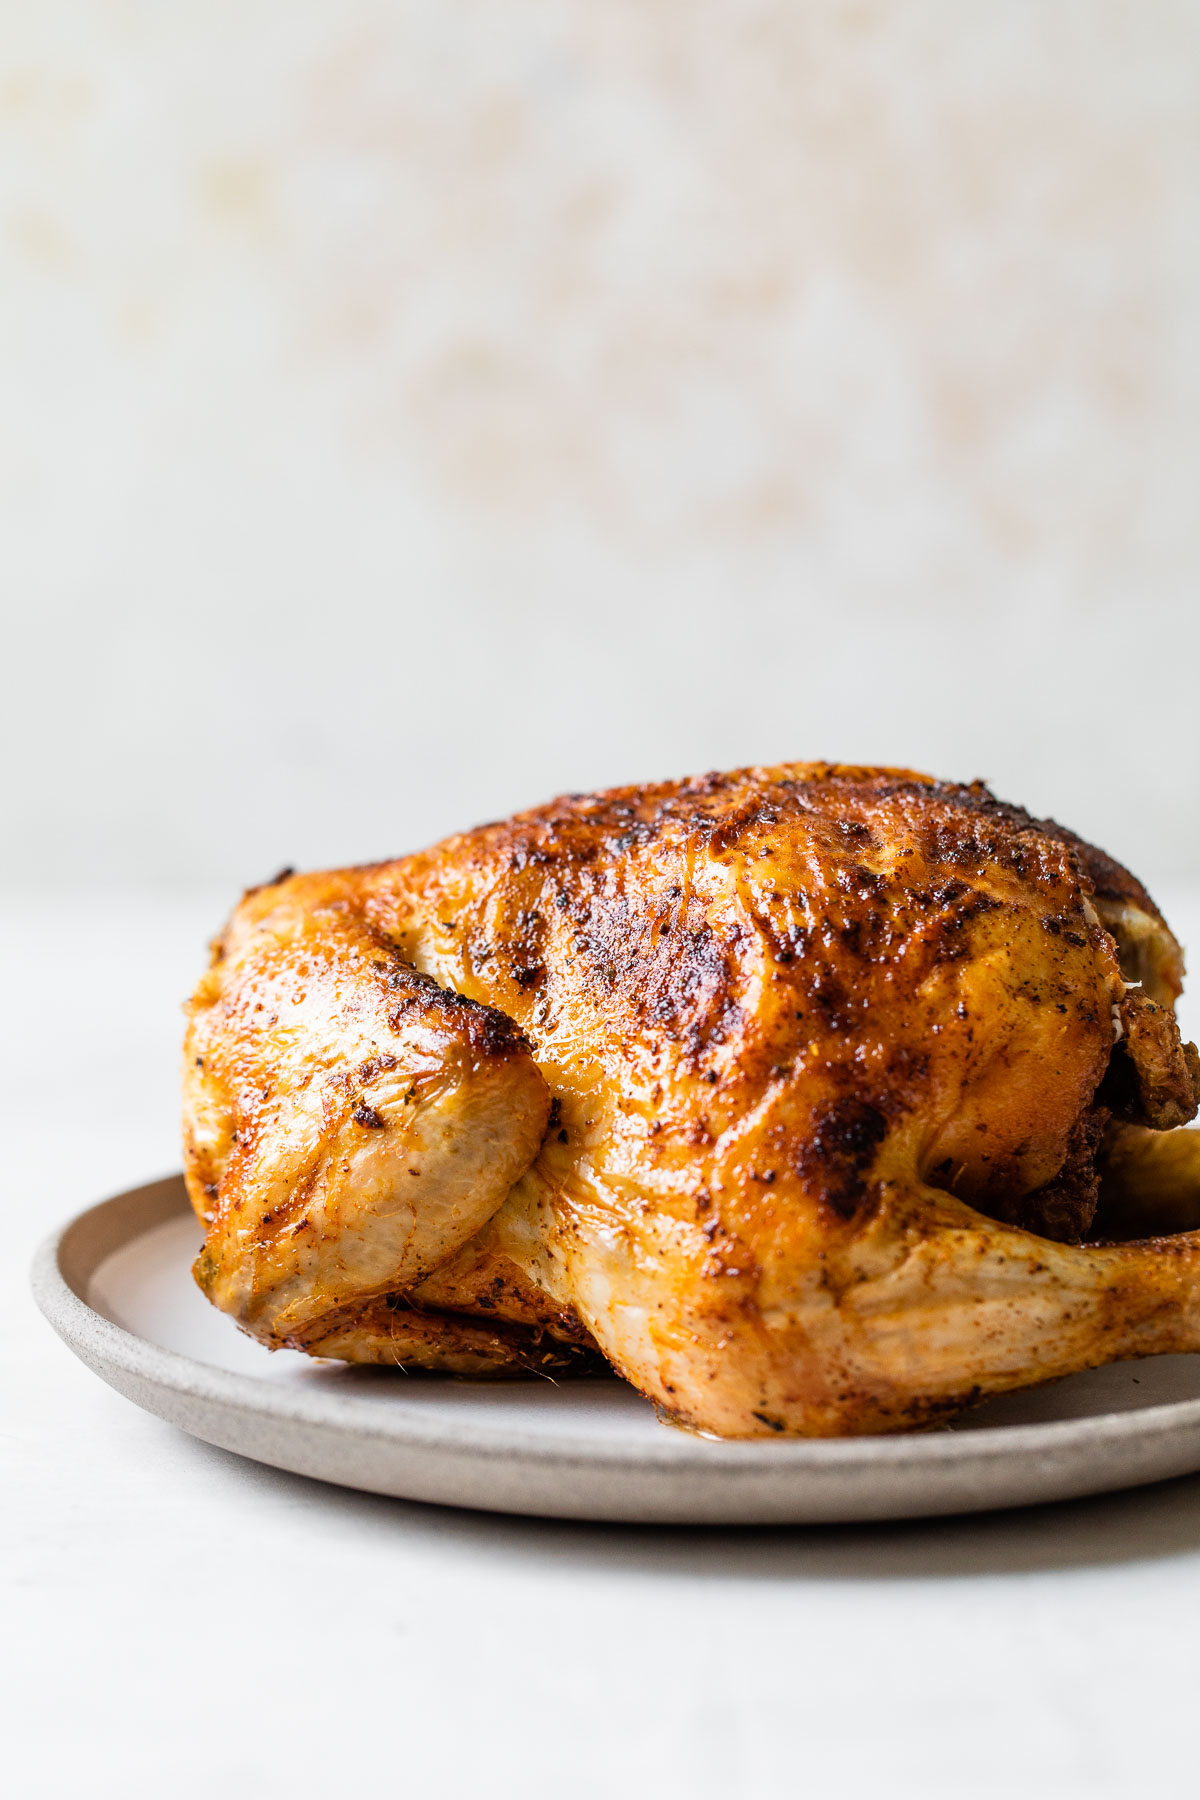 whole cooked chicken on a plate